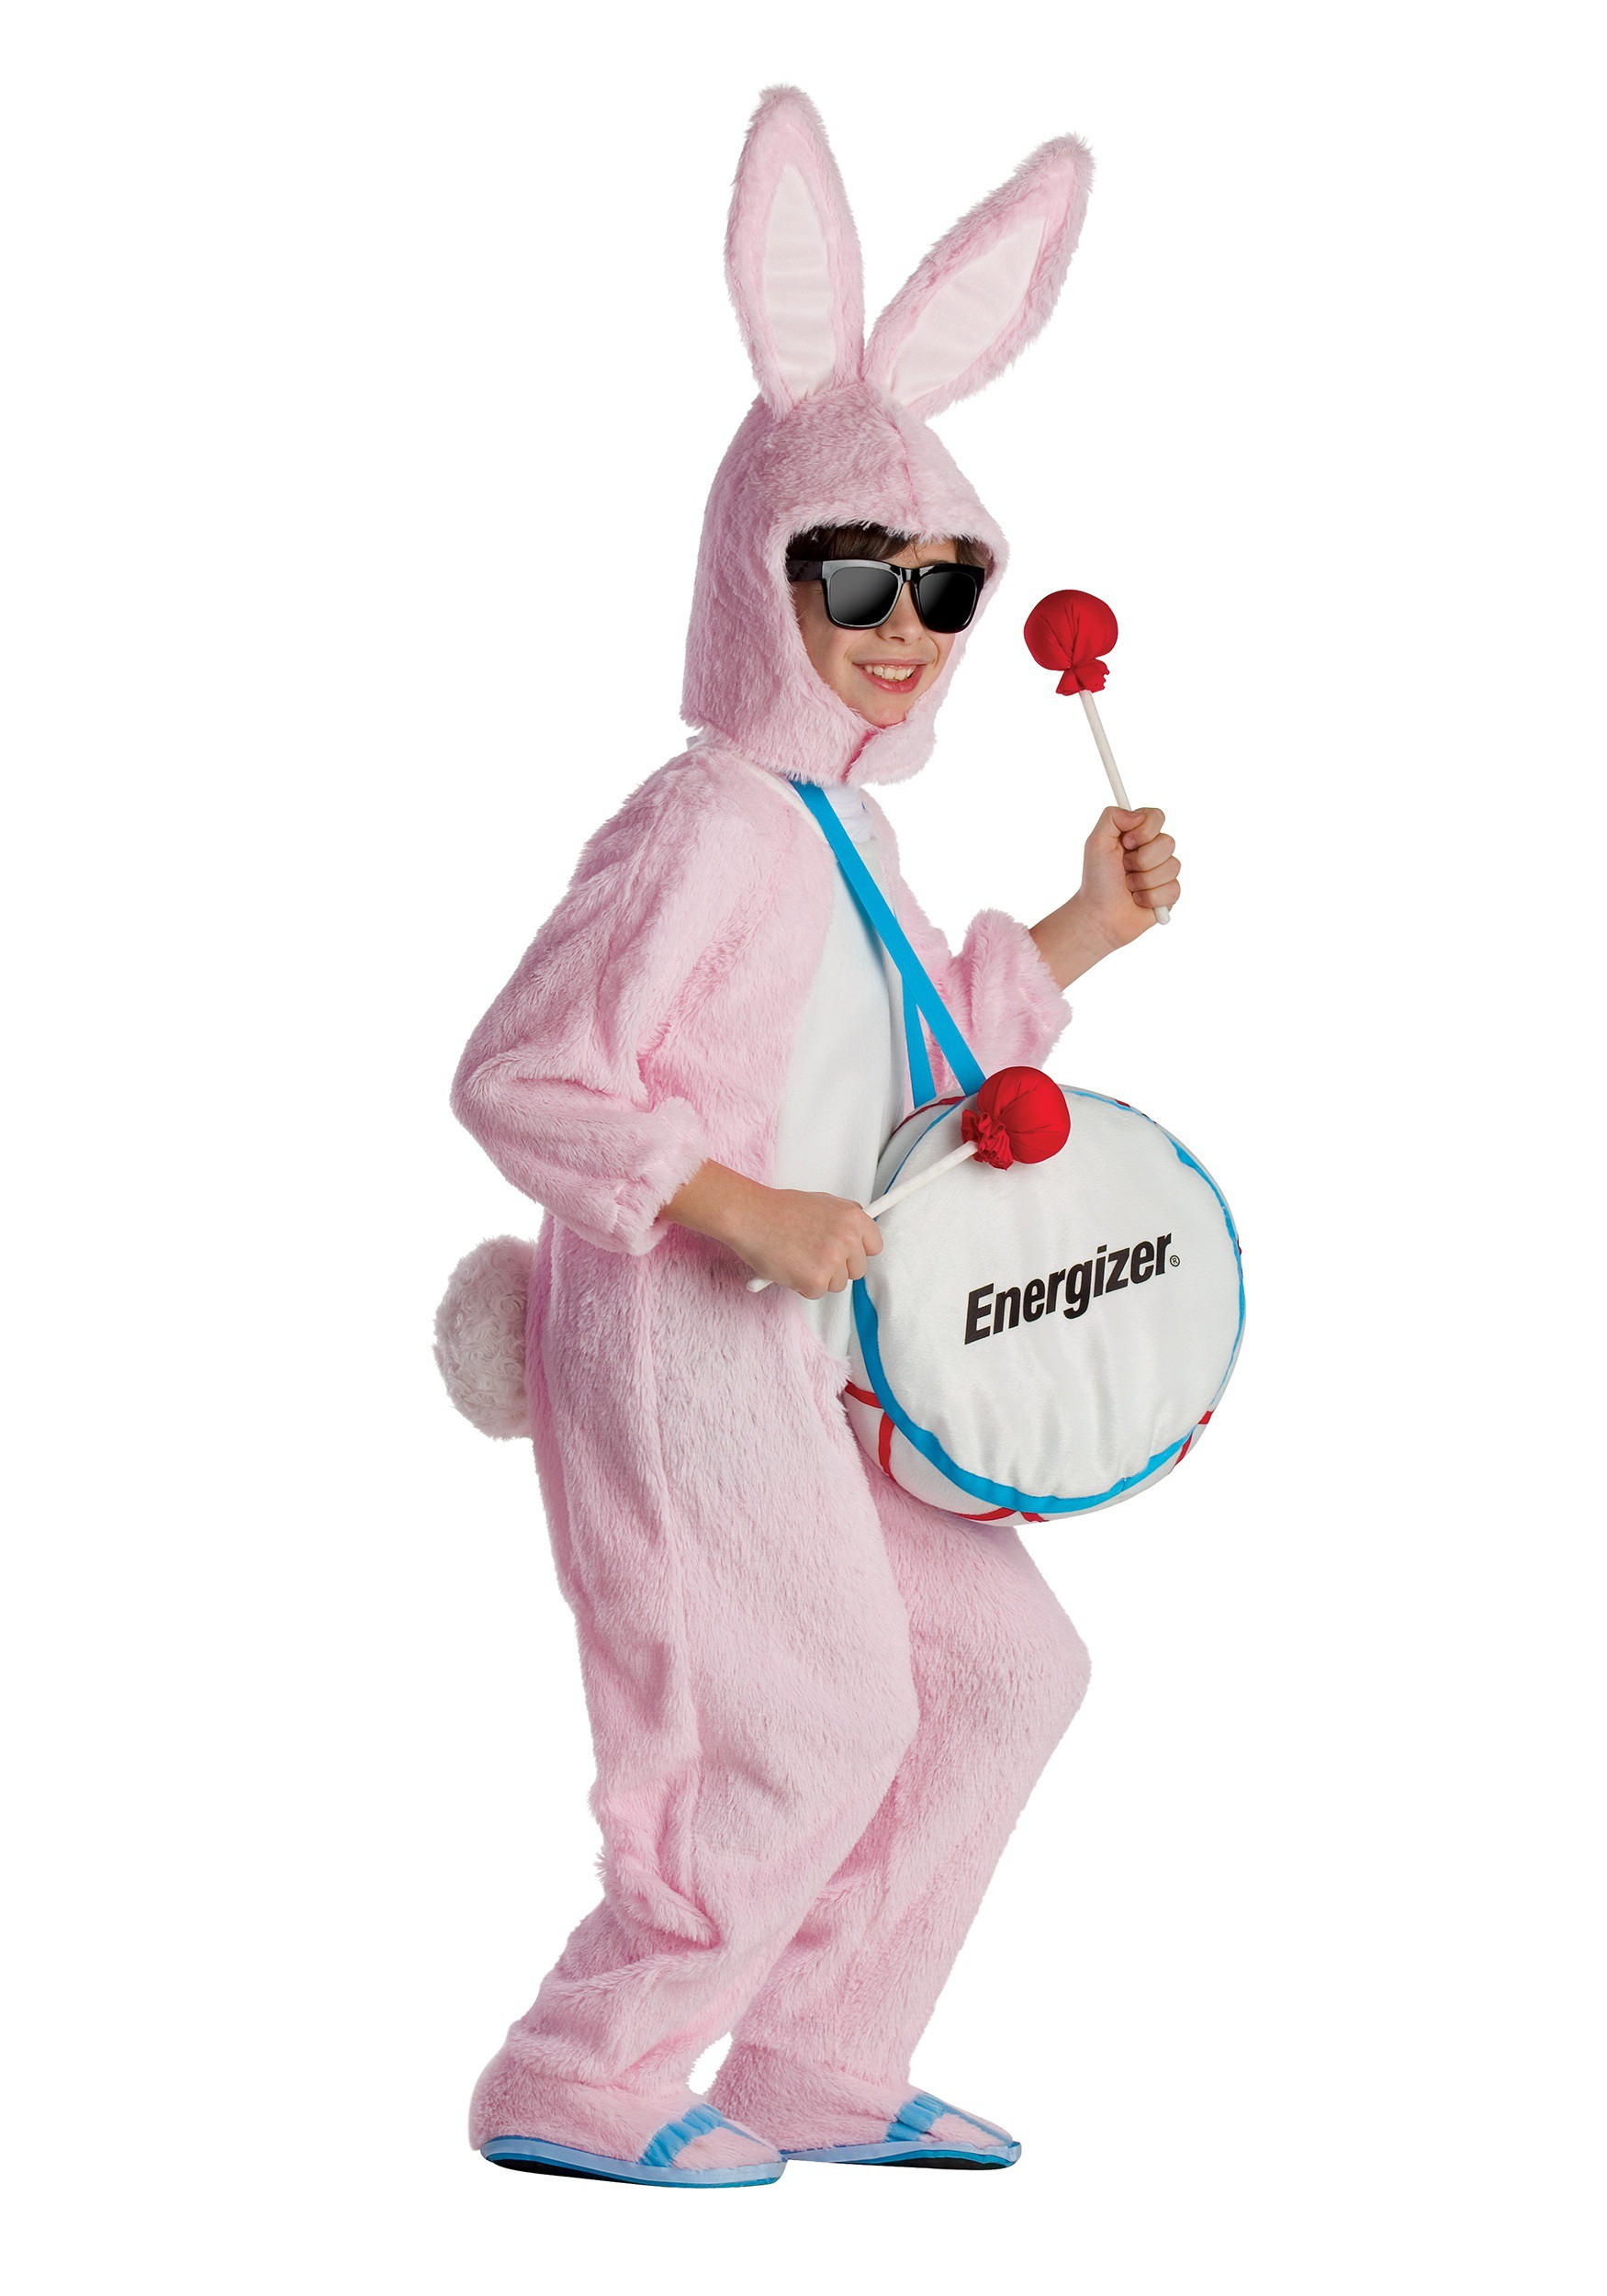 Energizer Bunny Mascot Costume for Kids